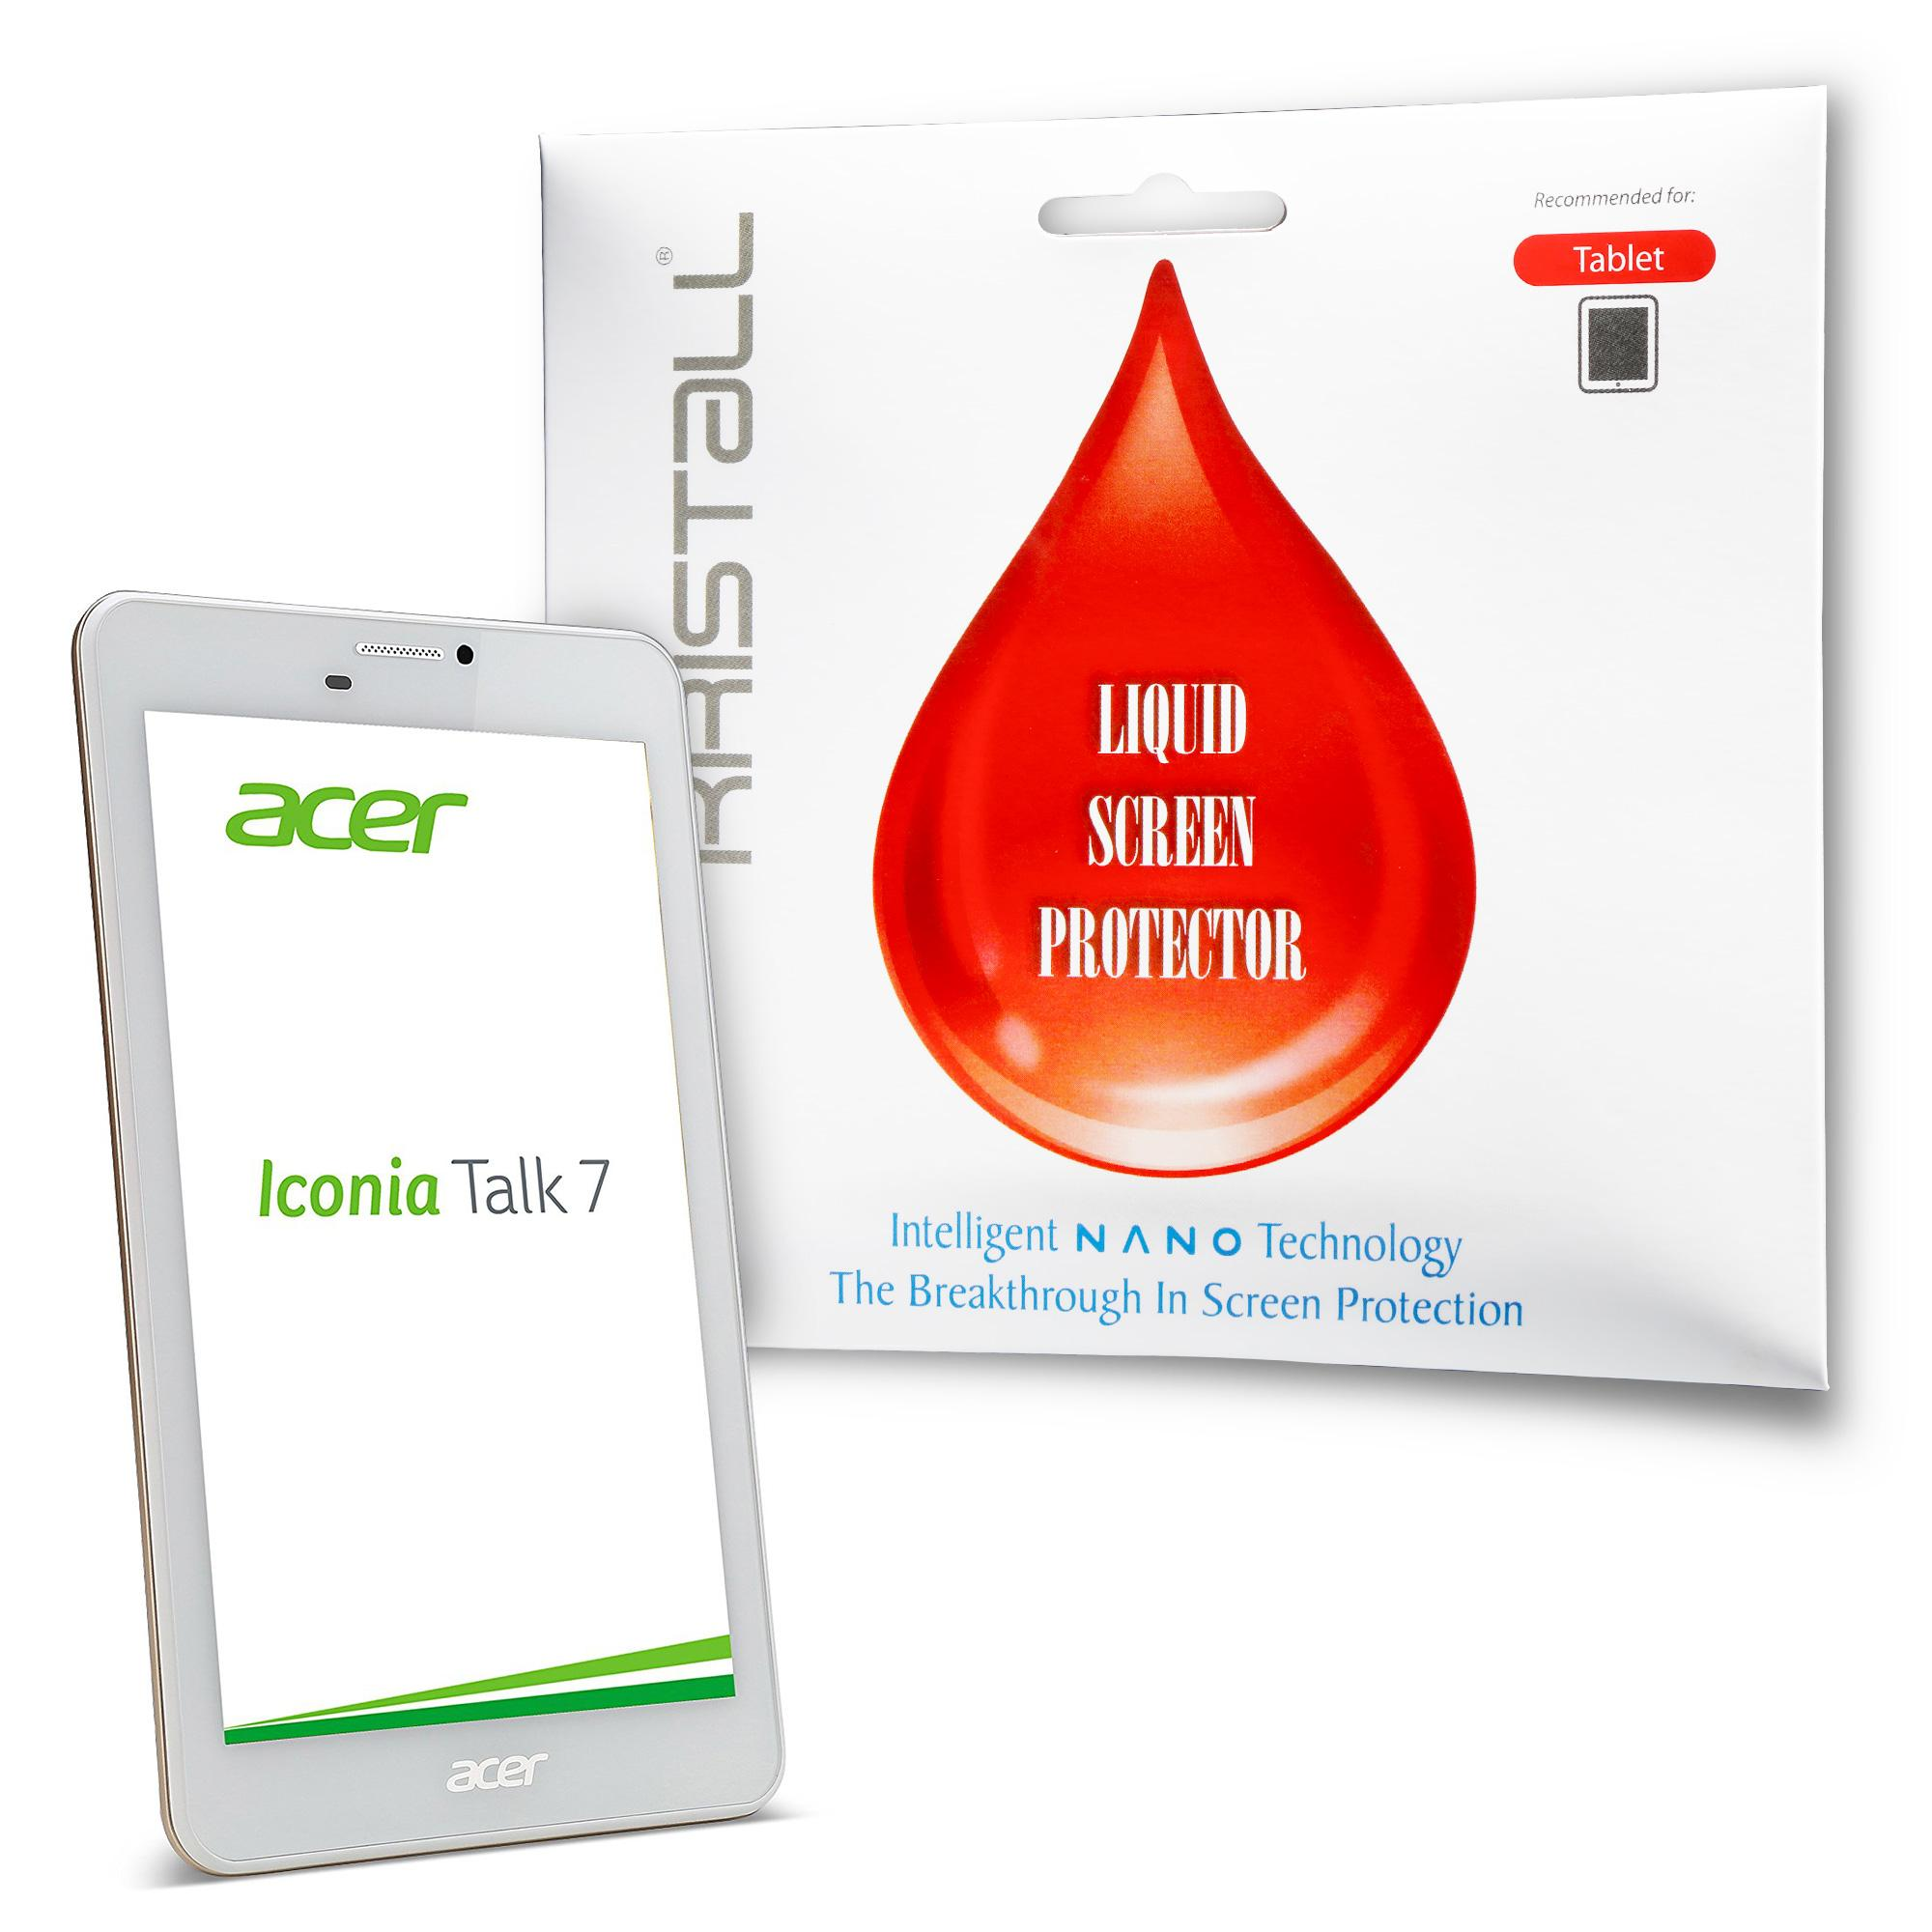 Acer Iconia Talk 7 Tablet Screen Protector - Kristall® Nano Liquid Screen Protector (Bubble-FREE Screen Protector, 9H Hardness, Scratch Resistant)